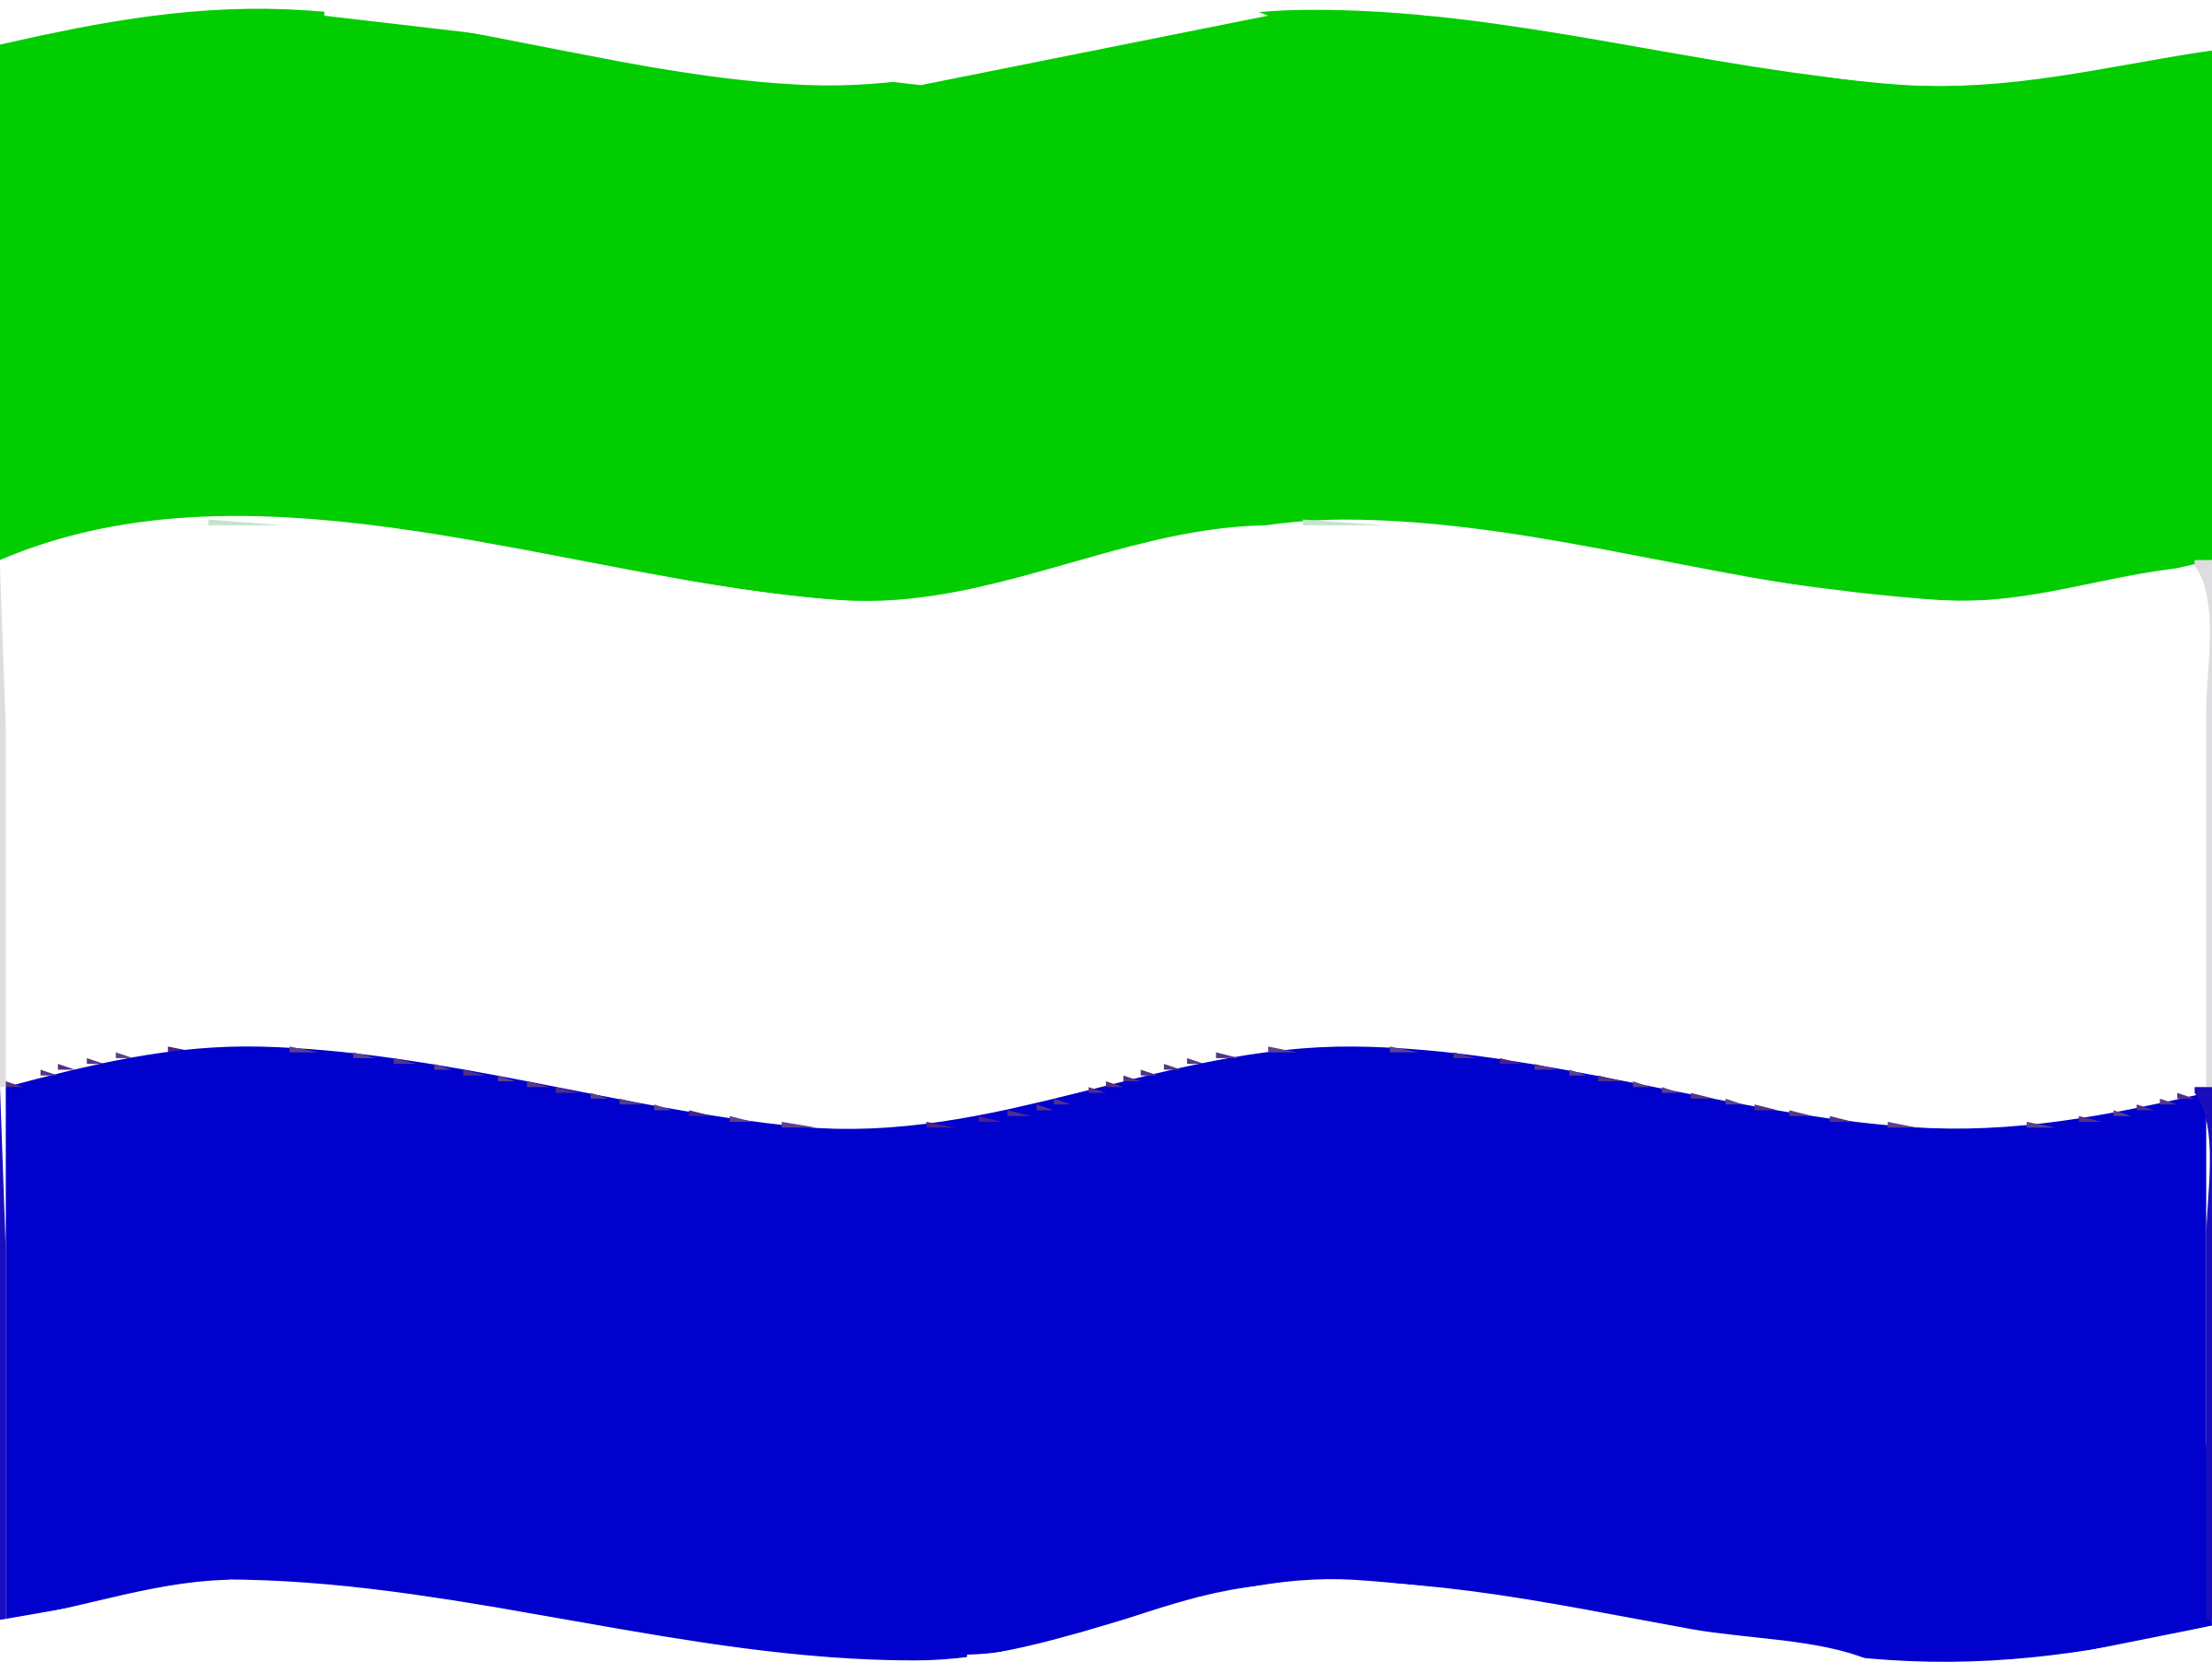 Flag of Sierra Leone wave by Joesph